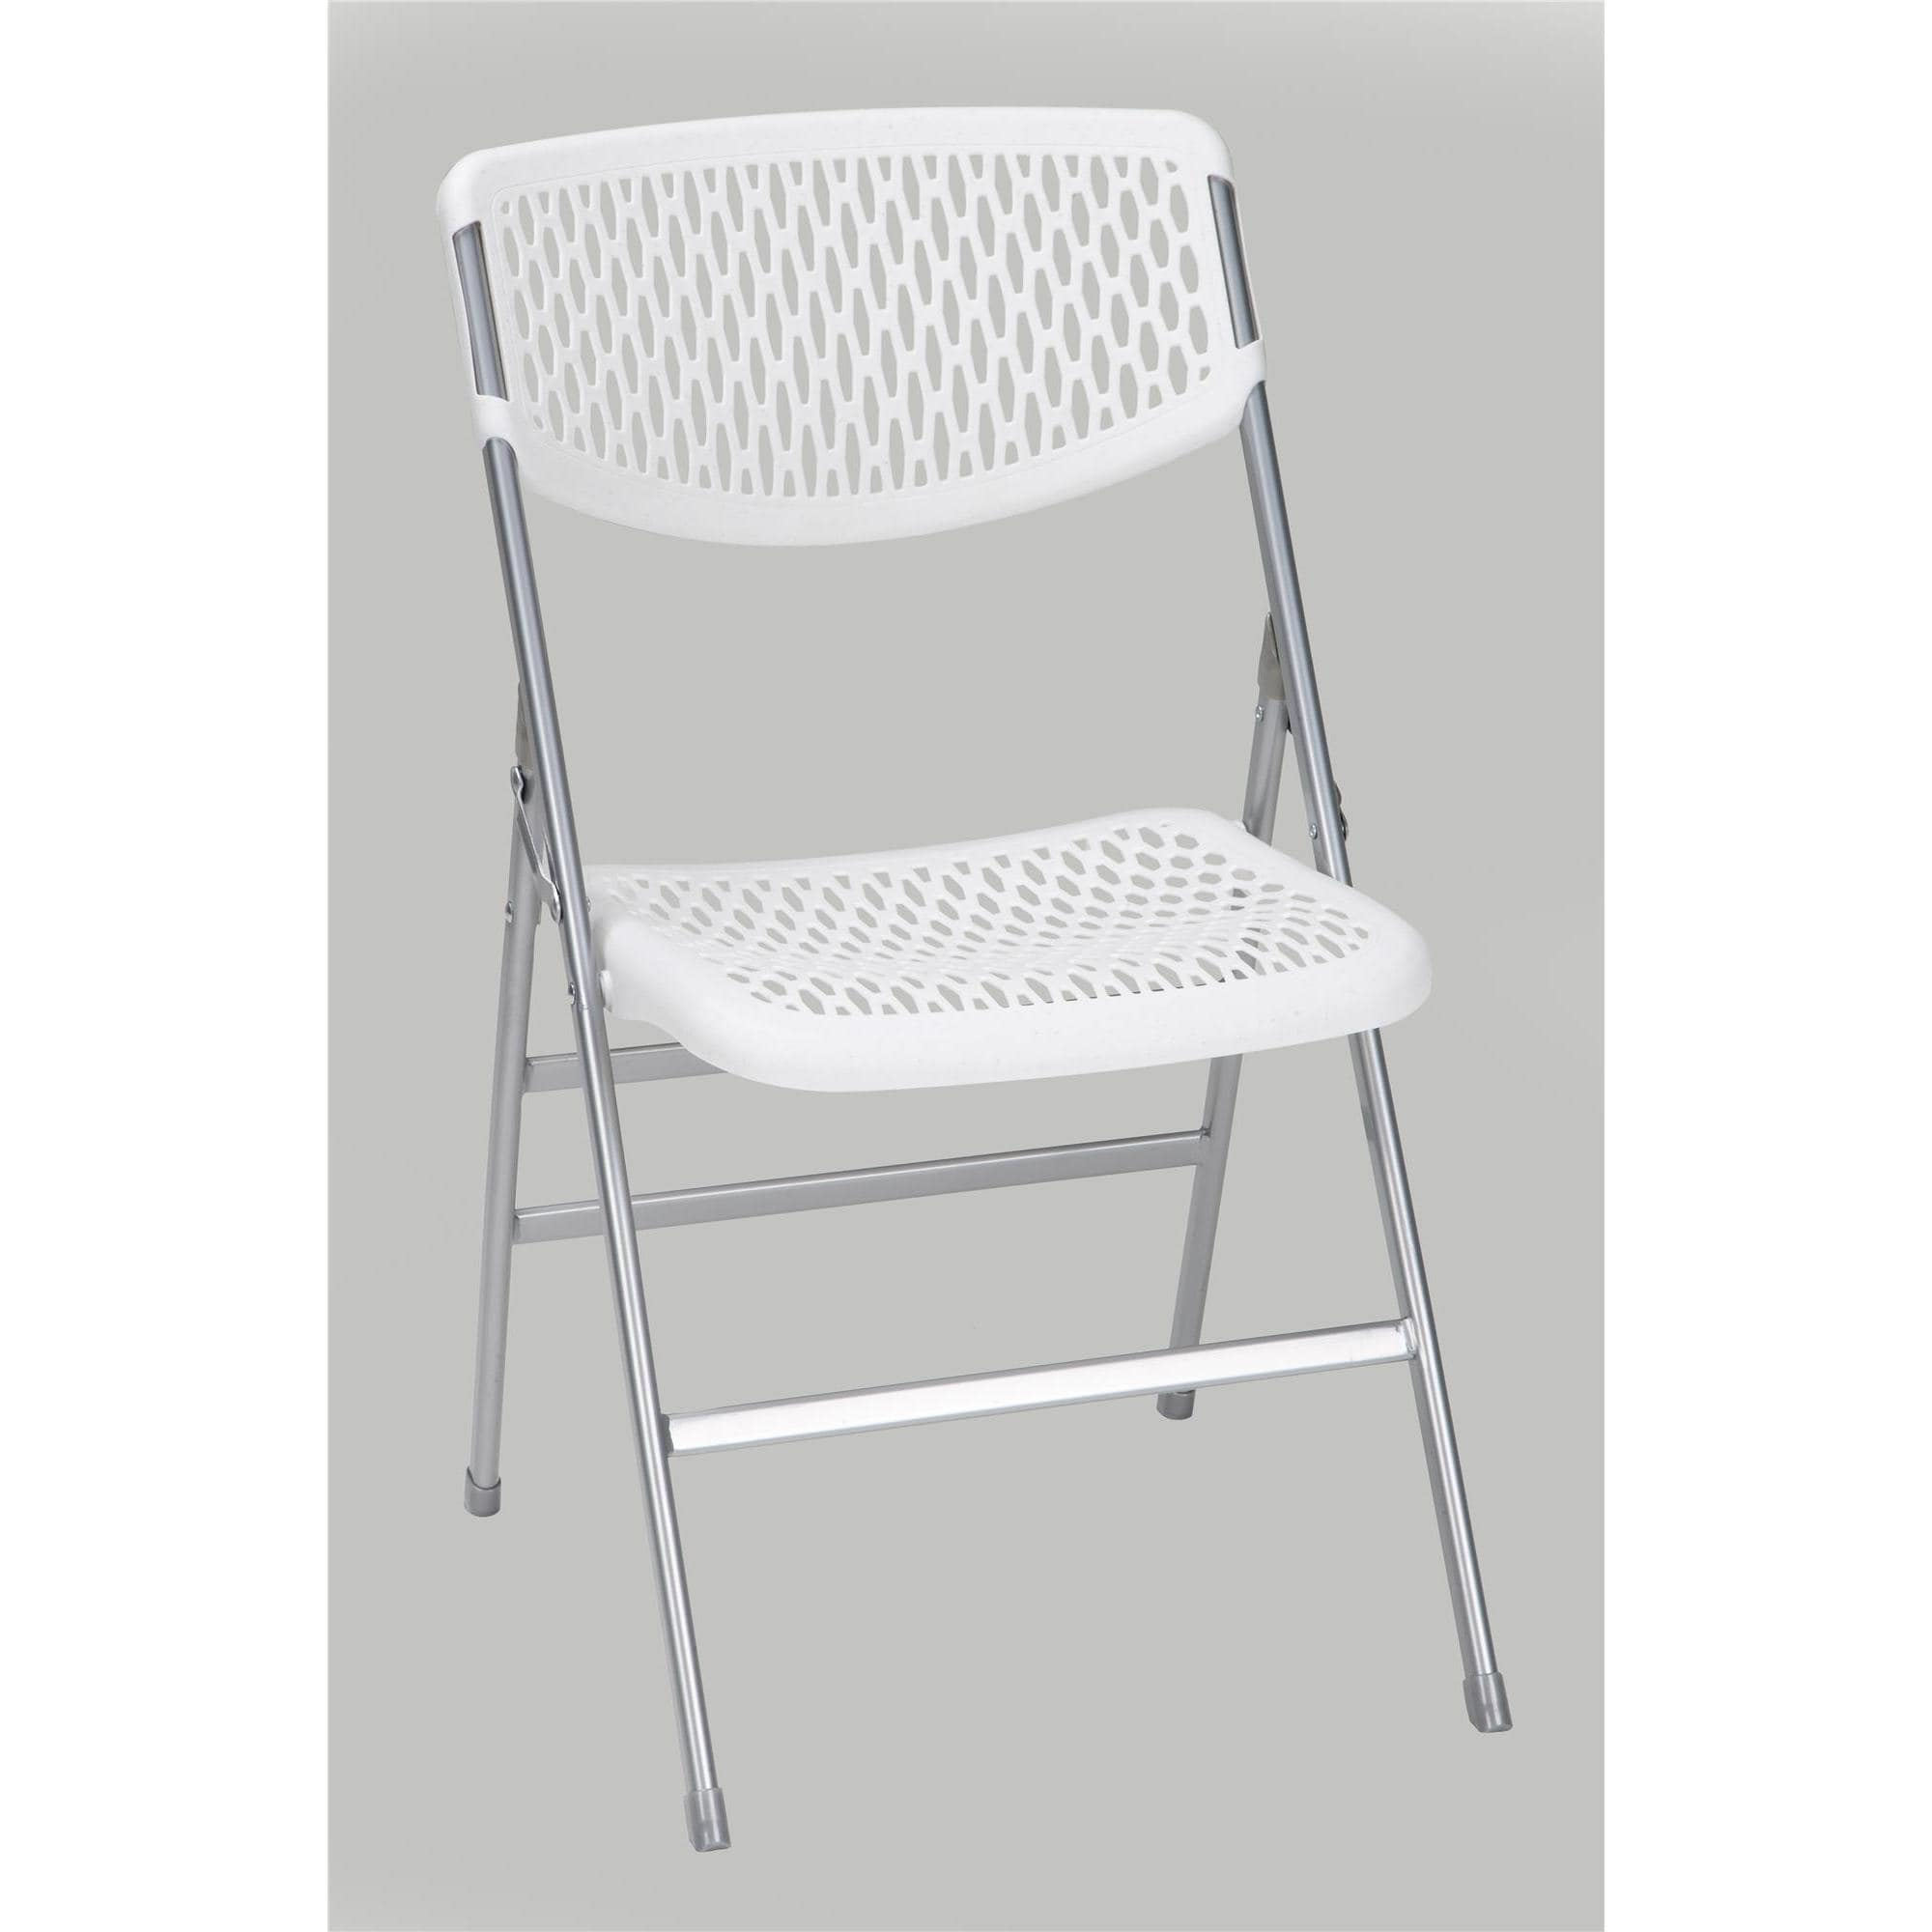 Great Shop COSCO Commercial Resin Mesh Folding Chair (Set Of 4)   Free Shipping  Today   Overstock.com   16740429